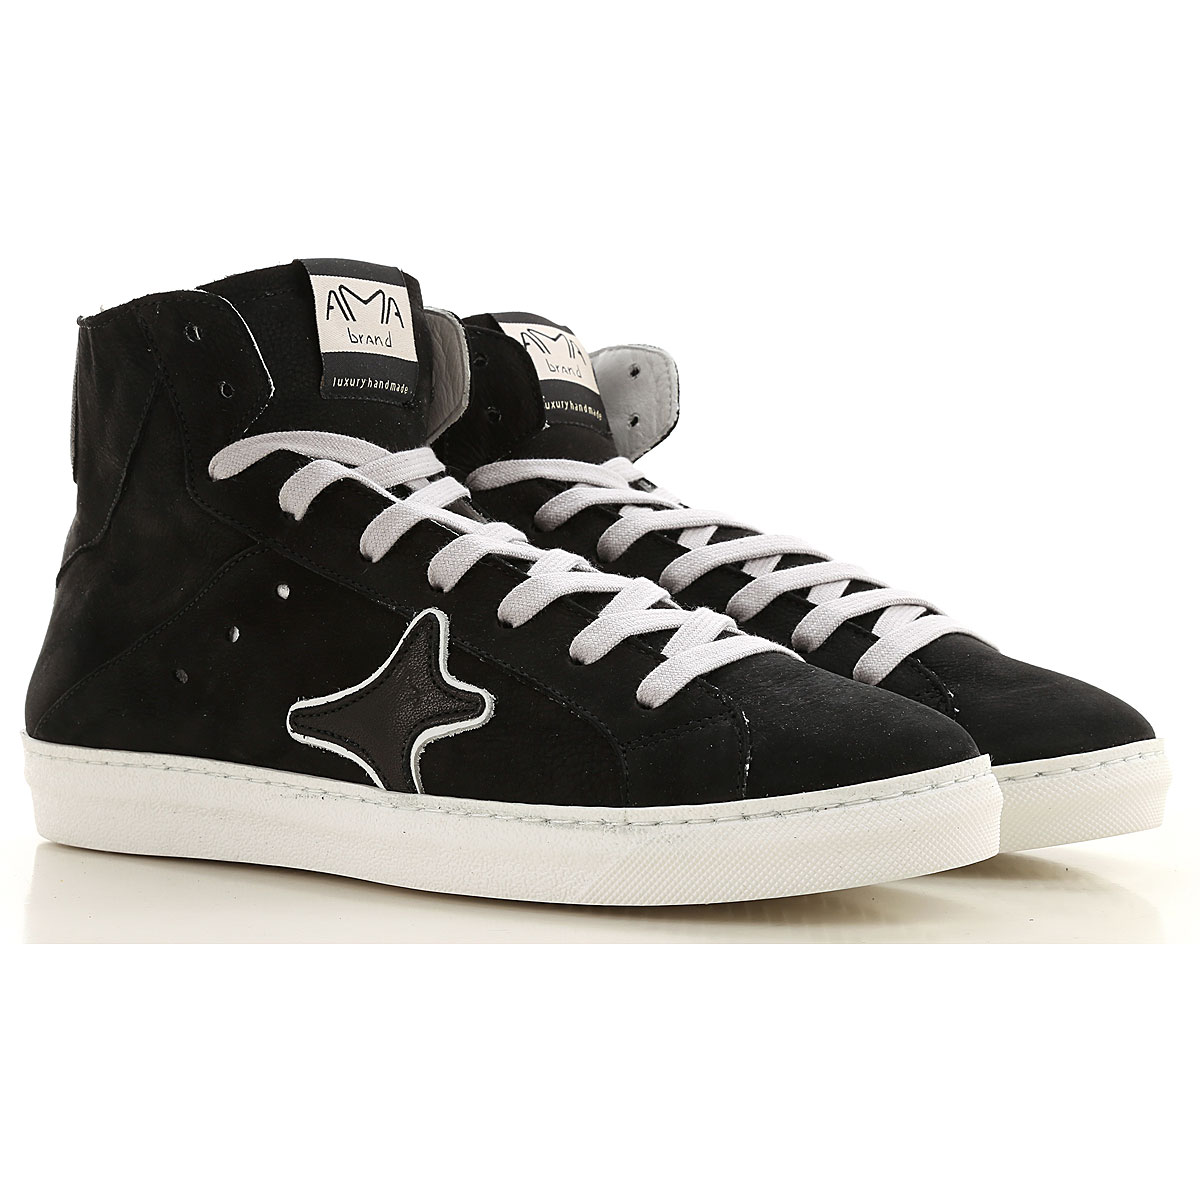 Ama Brand Sneakers for Men, Black, Leather, 2019, EUR 42 - UK 8 - USA 8.5 EUR 43 - UK 9 - USA 9.5 EUR 44 - UK 9.5 - USA 10 EUR 45 - UK 10.5 - USA 11 E